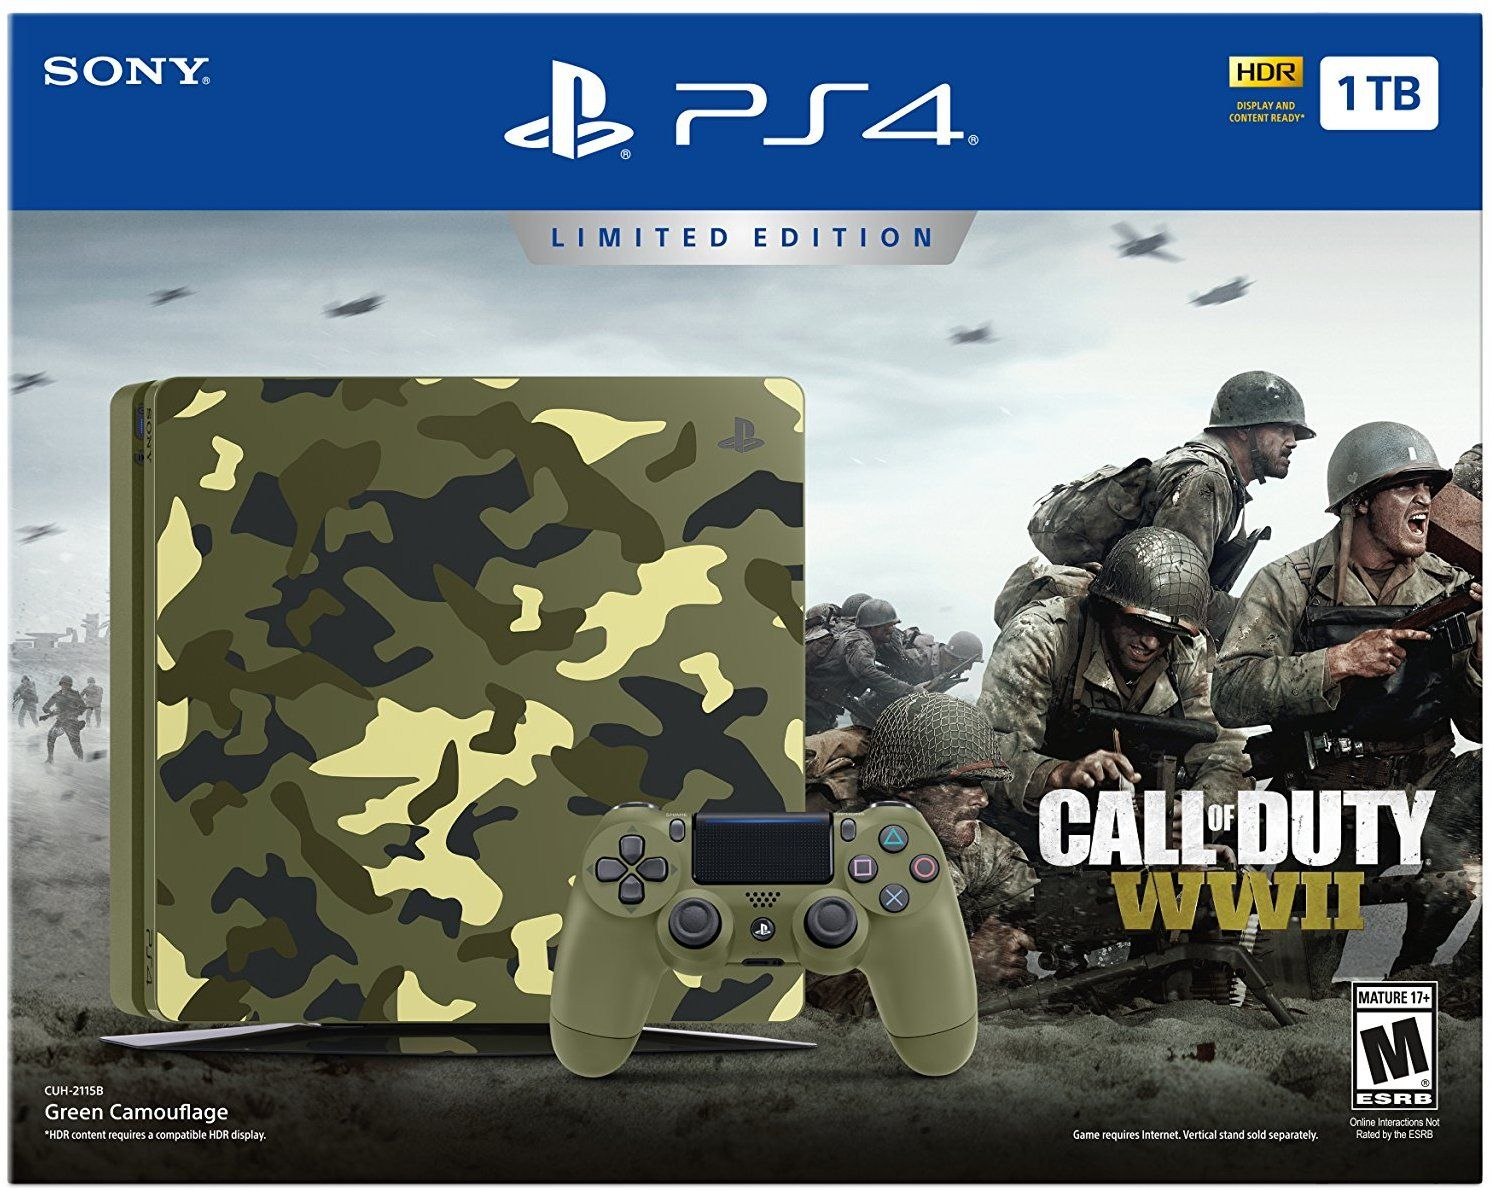 Playstation 4 Slim 1tb Limited Edition Console Call Of Duty Wwii Bundle Discontinued Video Games Call Of Duty Call Of Duty Black Playstation